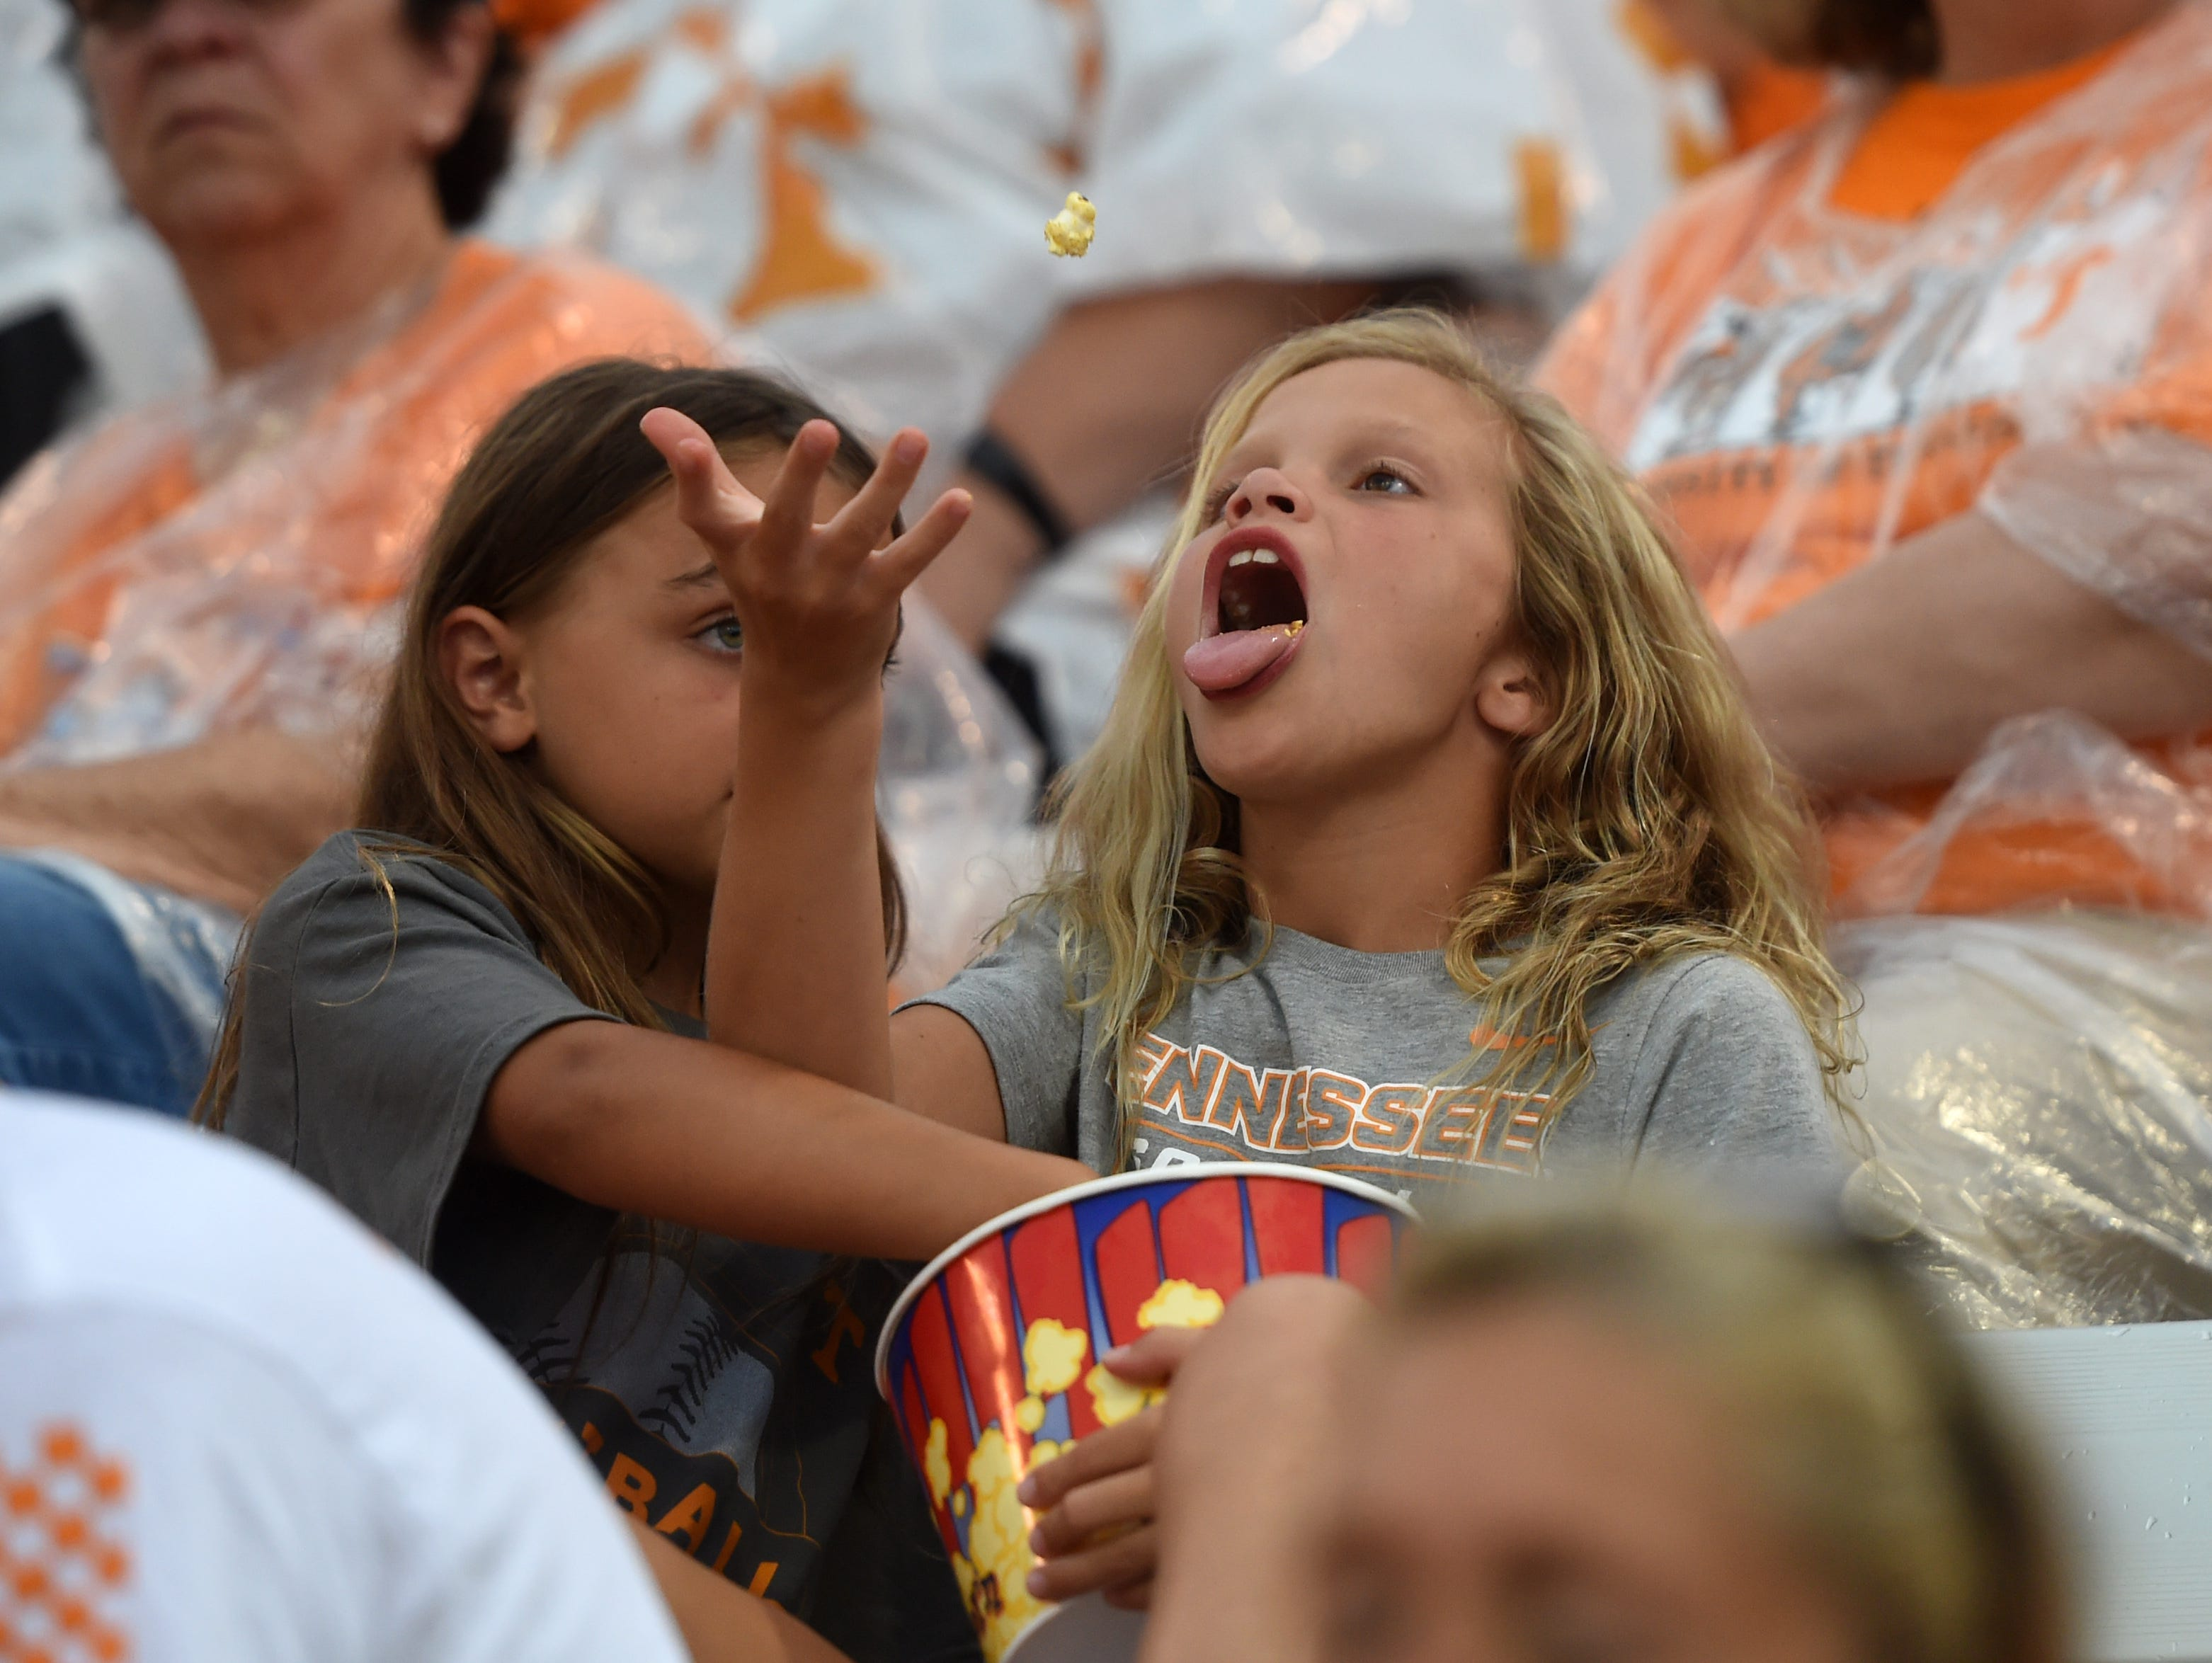 Young Tennessee fans pass time in the stands during an NCAA Super Regional game between Tennessee and Texas A&M at Sherri Parker Lee Stadium on Saturday, May 27, 2017. Texas A&M defeated Tennessee 6-5.